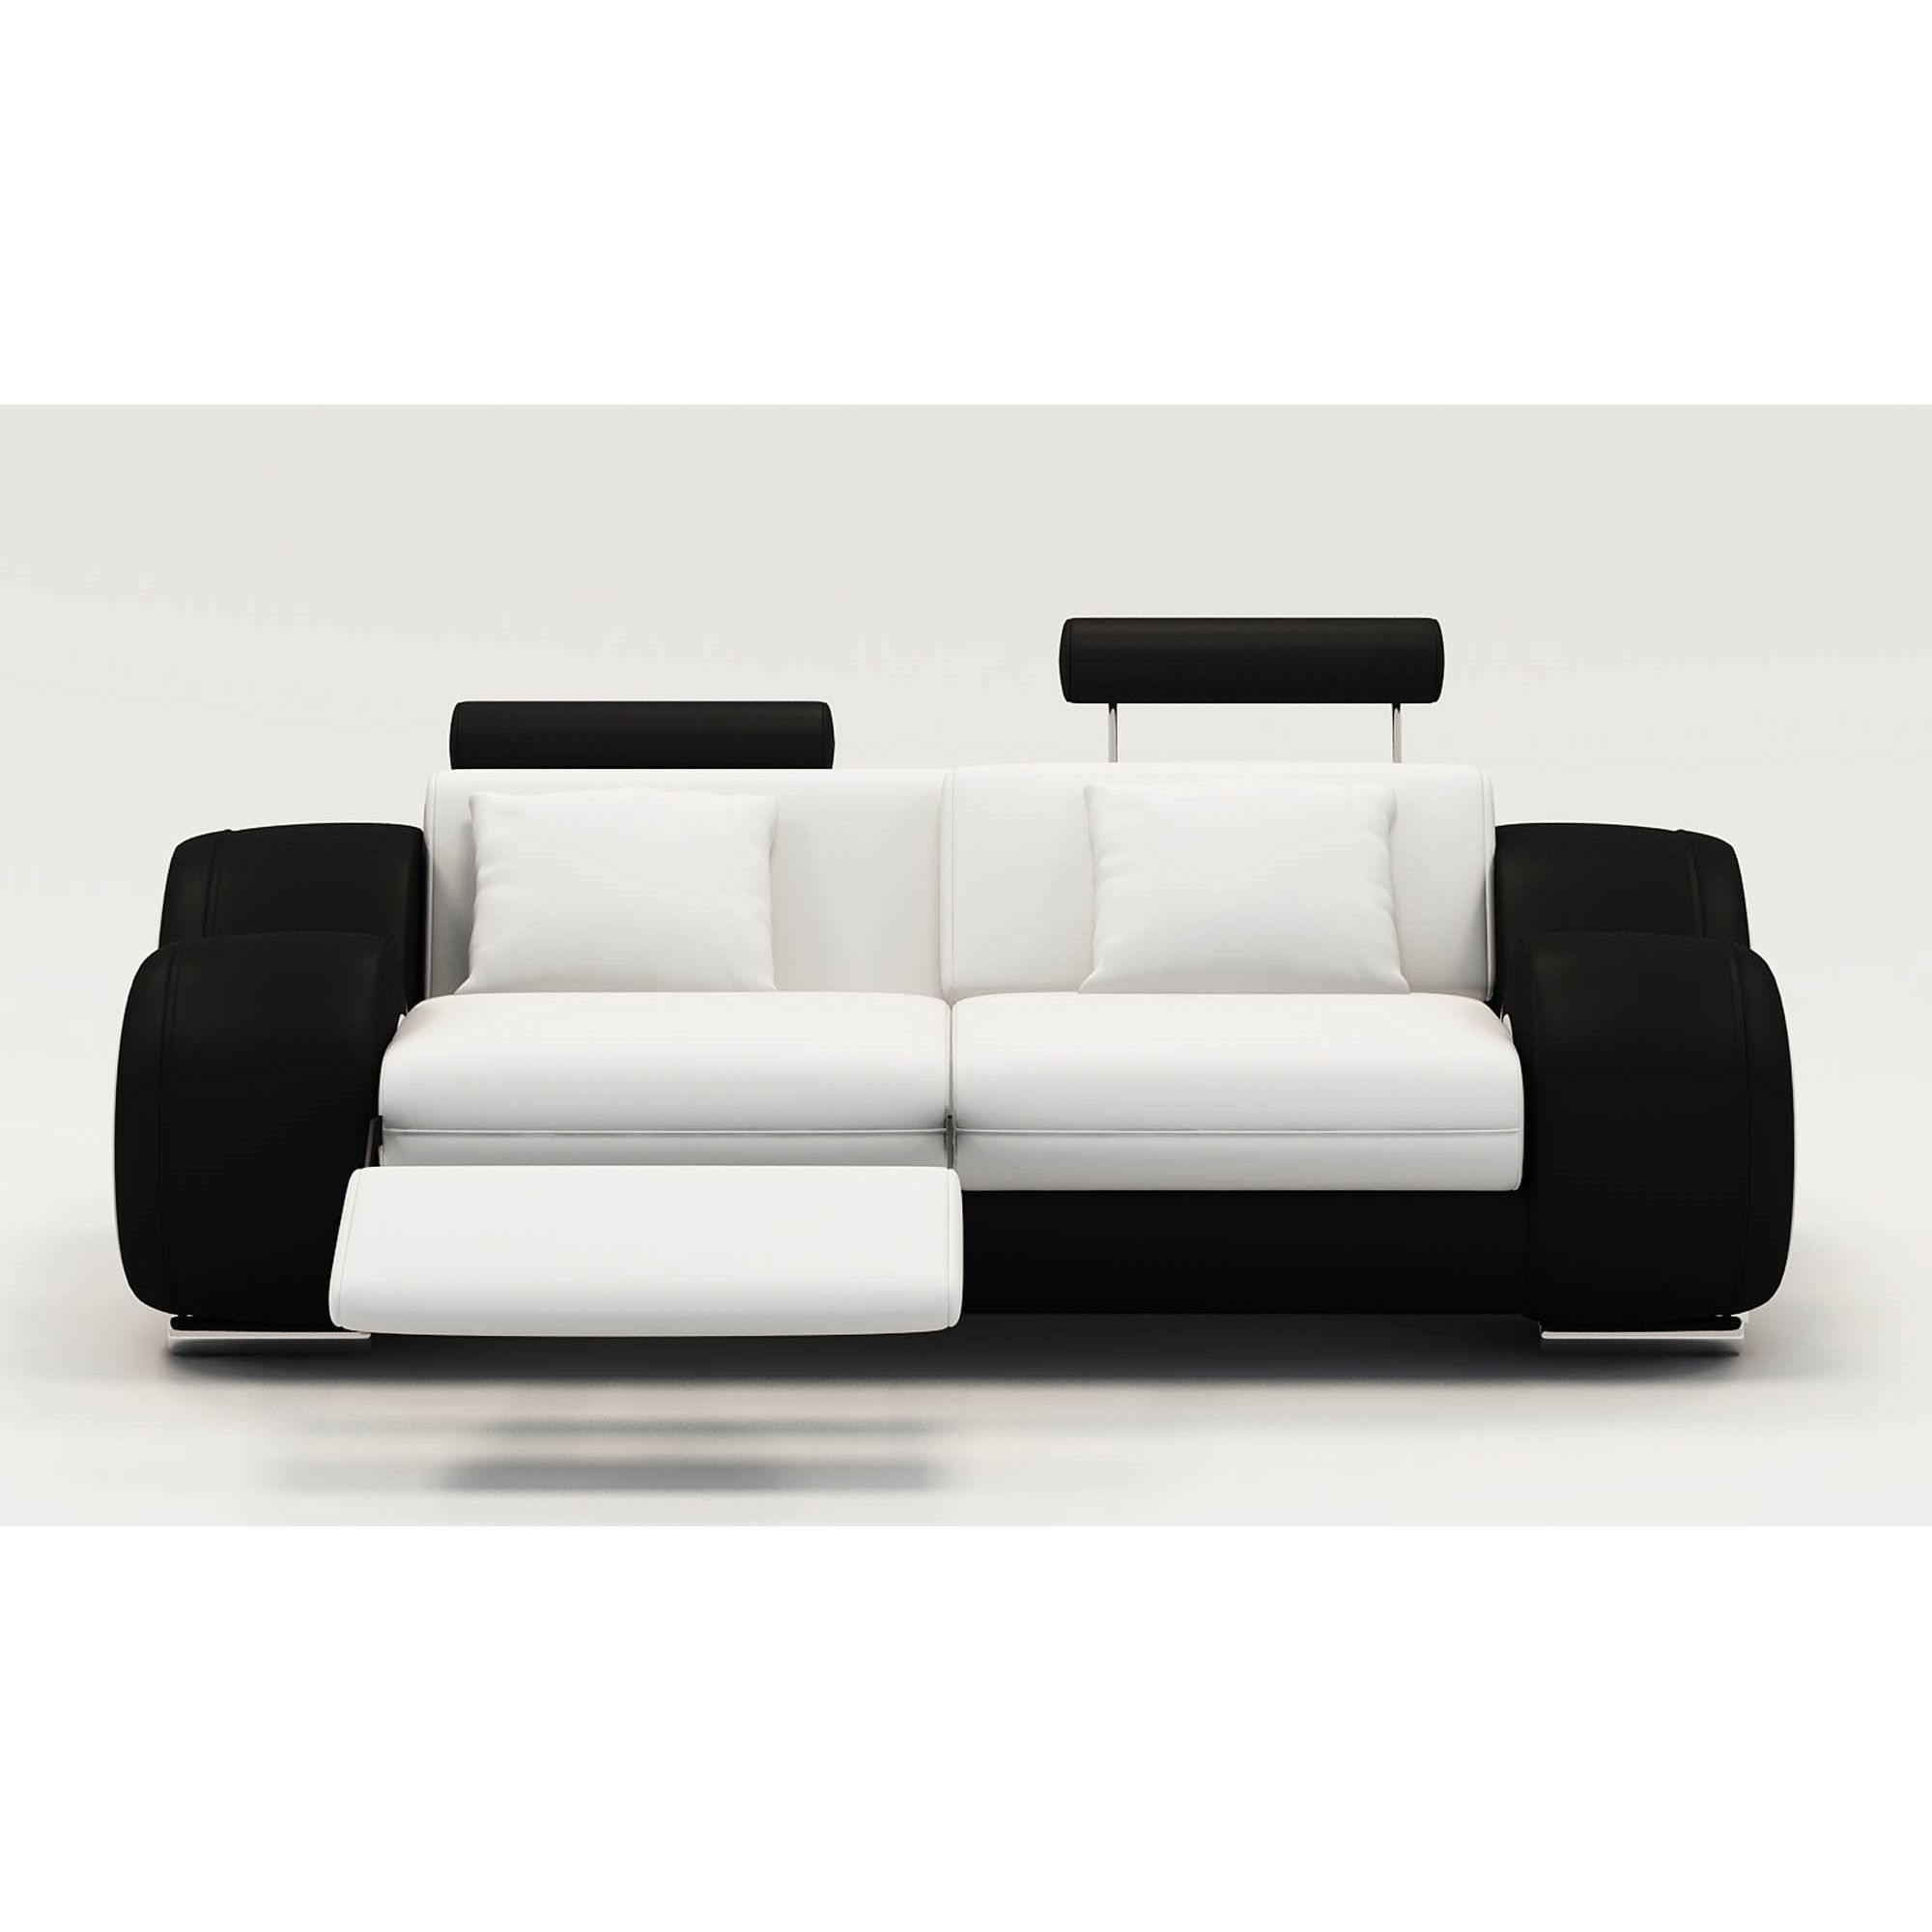 Deco in paris ensemble canape relax design 3 2 1 places - Canape 2 places et 3 places ...